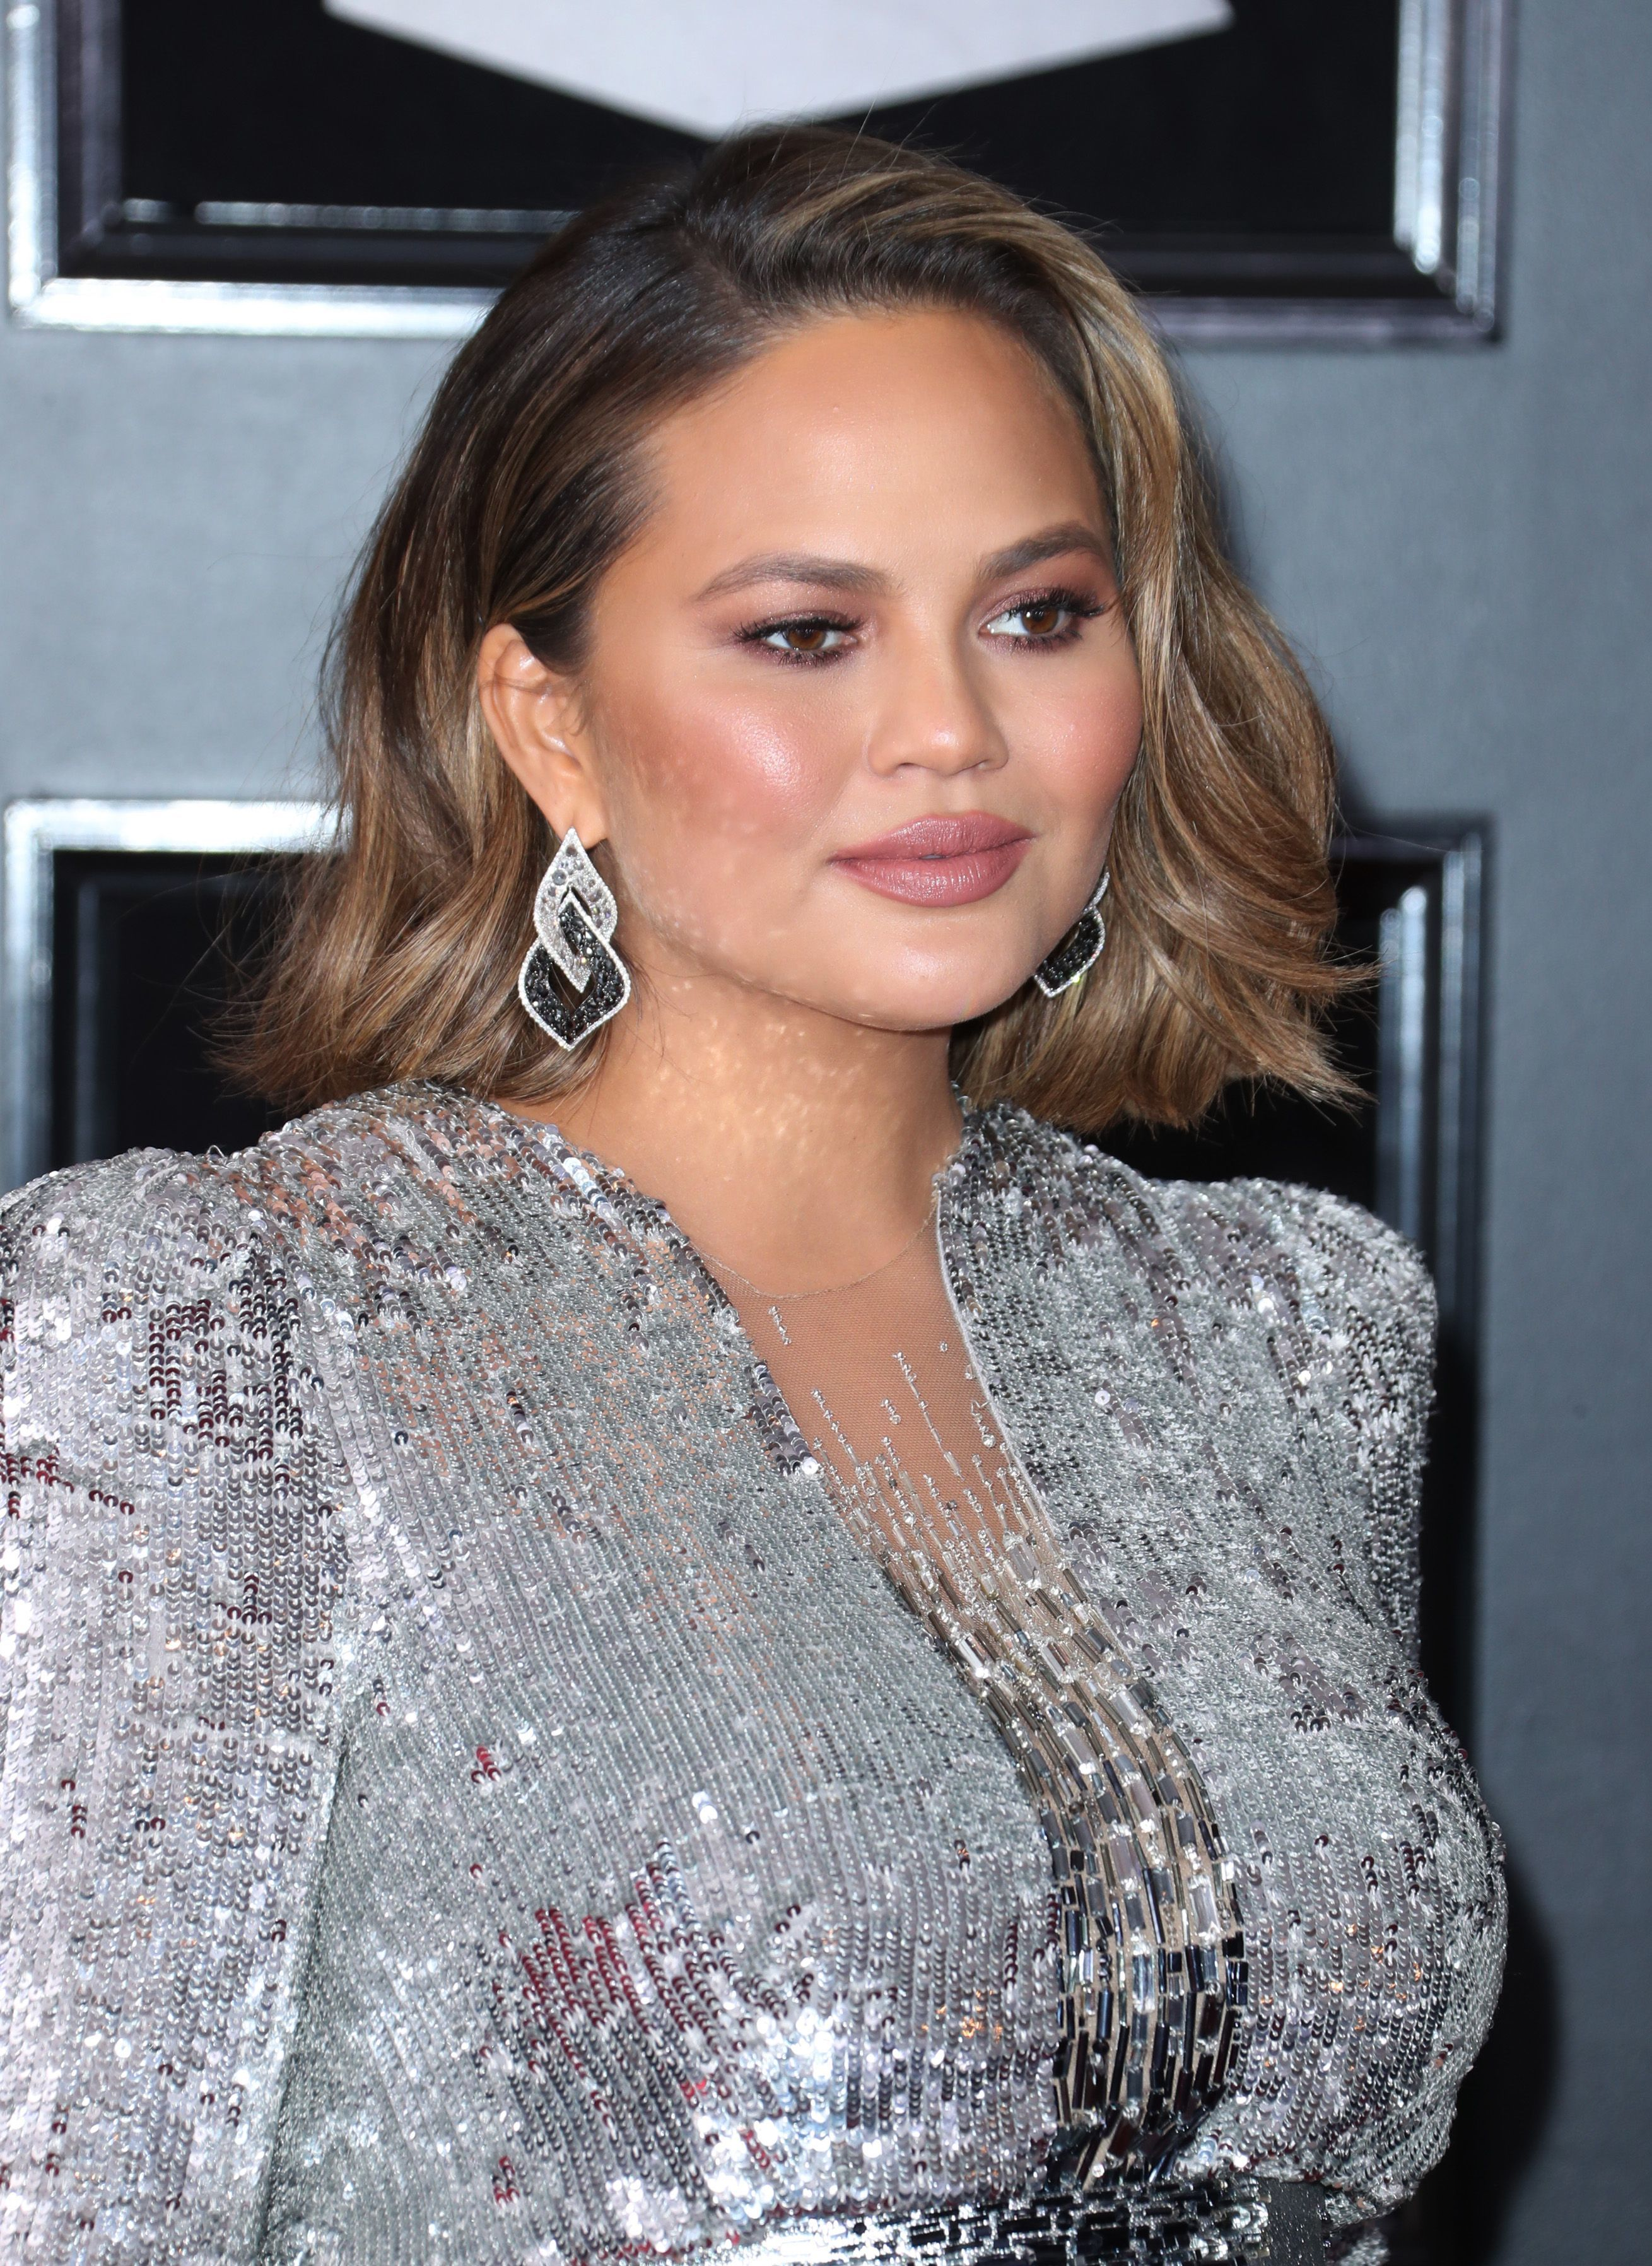 Chrissy Teigen at the 60th Annual Grammy Awards in New York on Jan. 28, 2018.